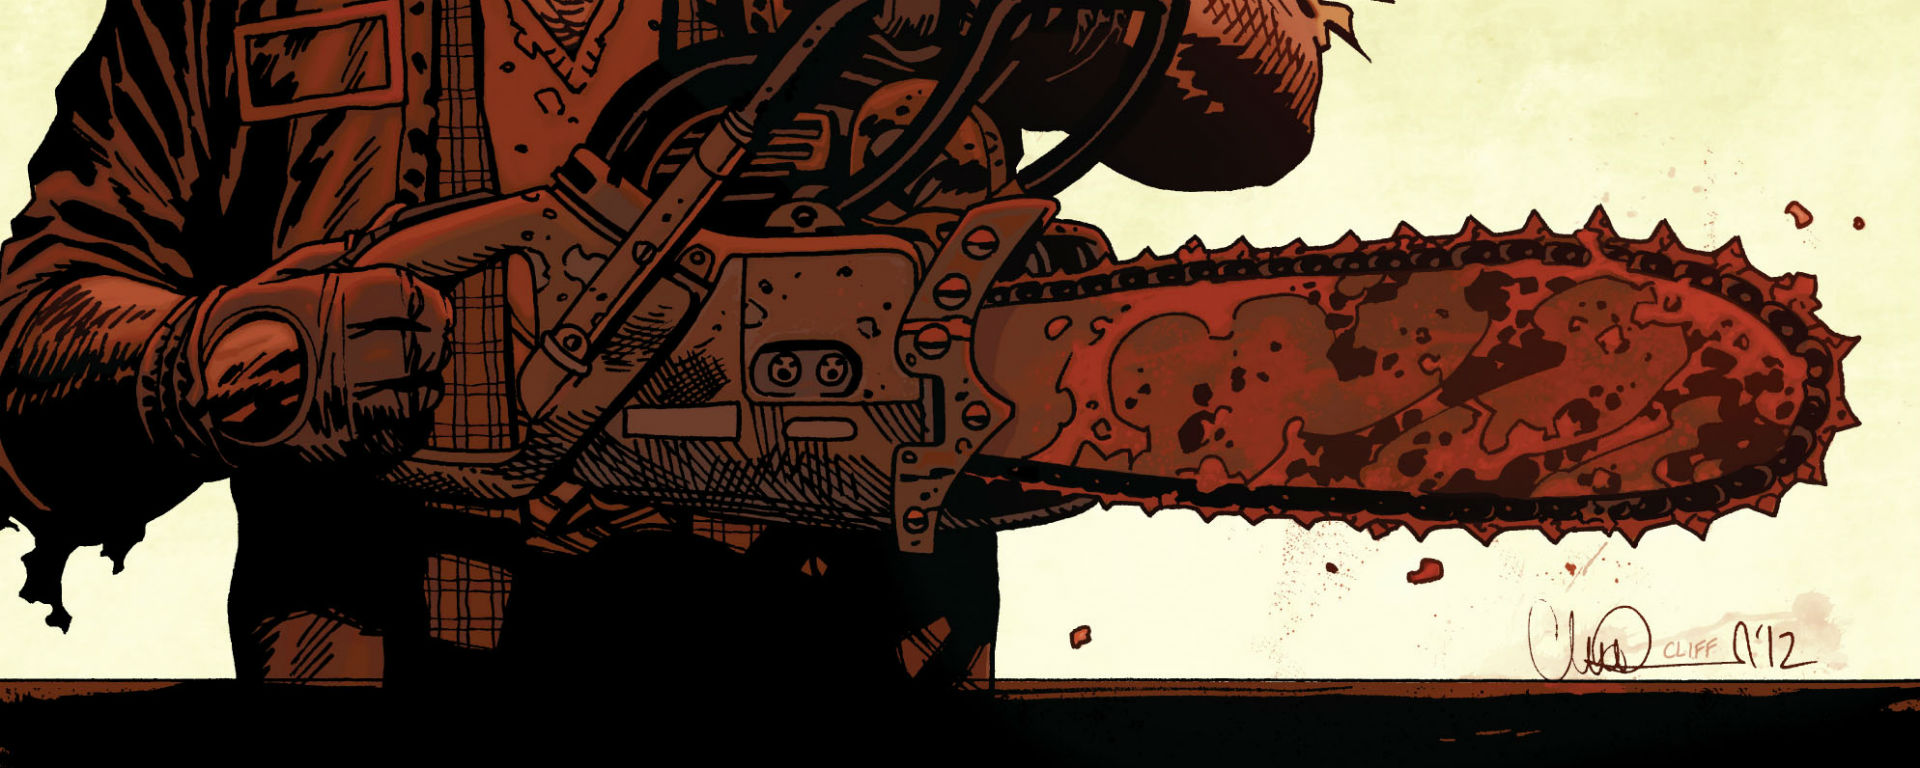 image comics the walking dead 97 review feature image